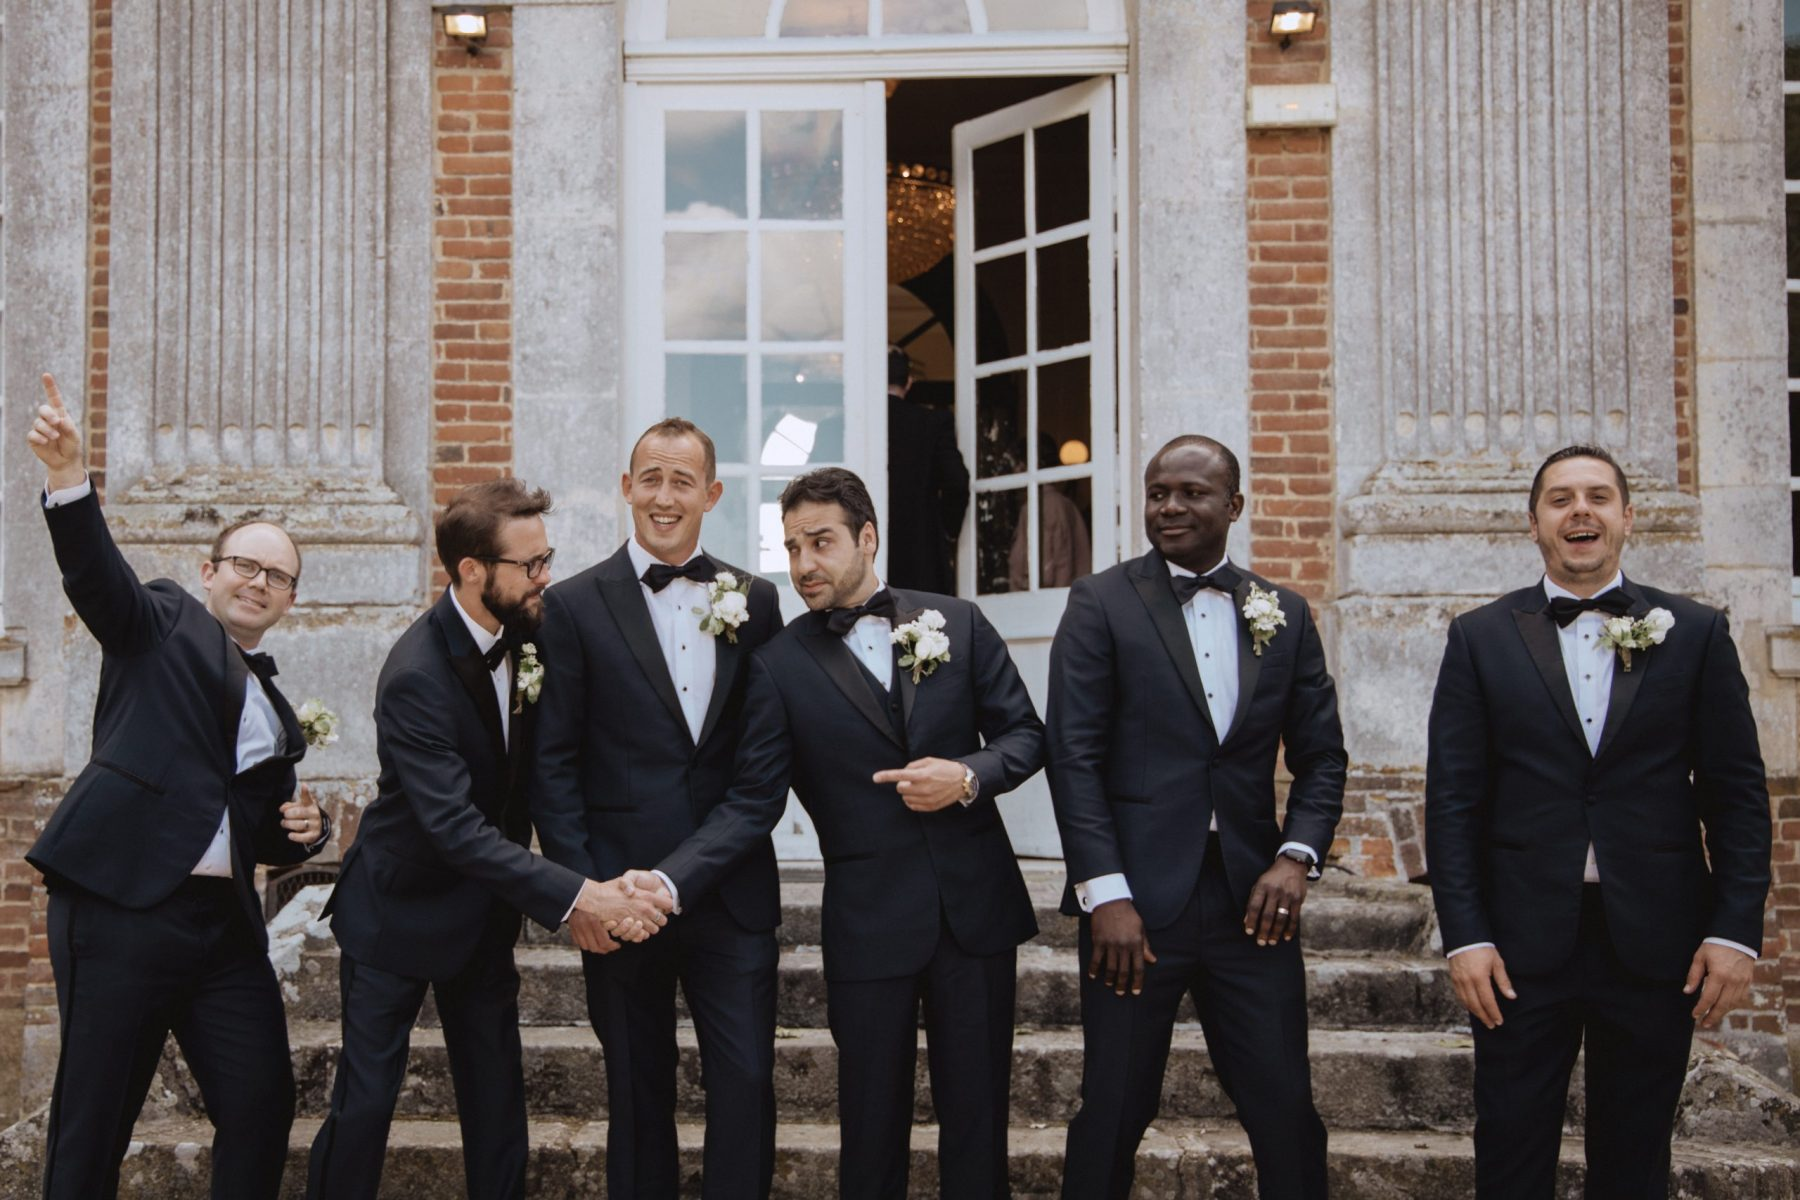 wedding photos from chateau de carsix photographer in paris